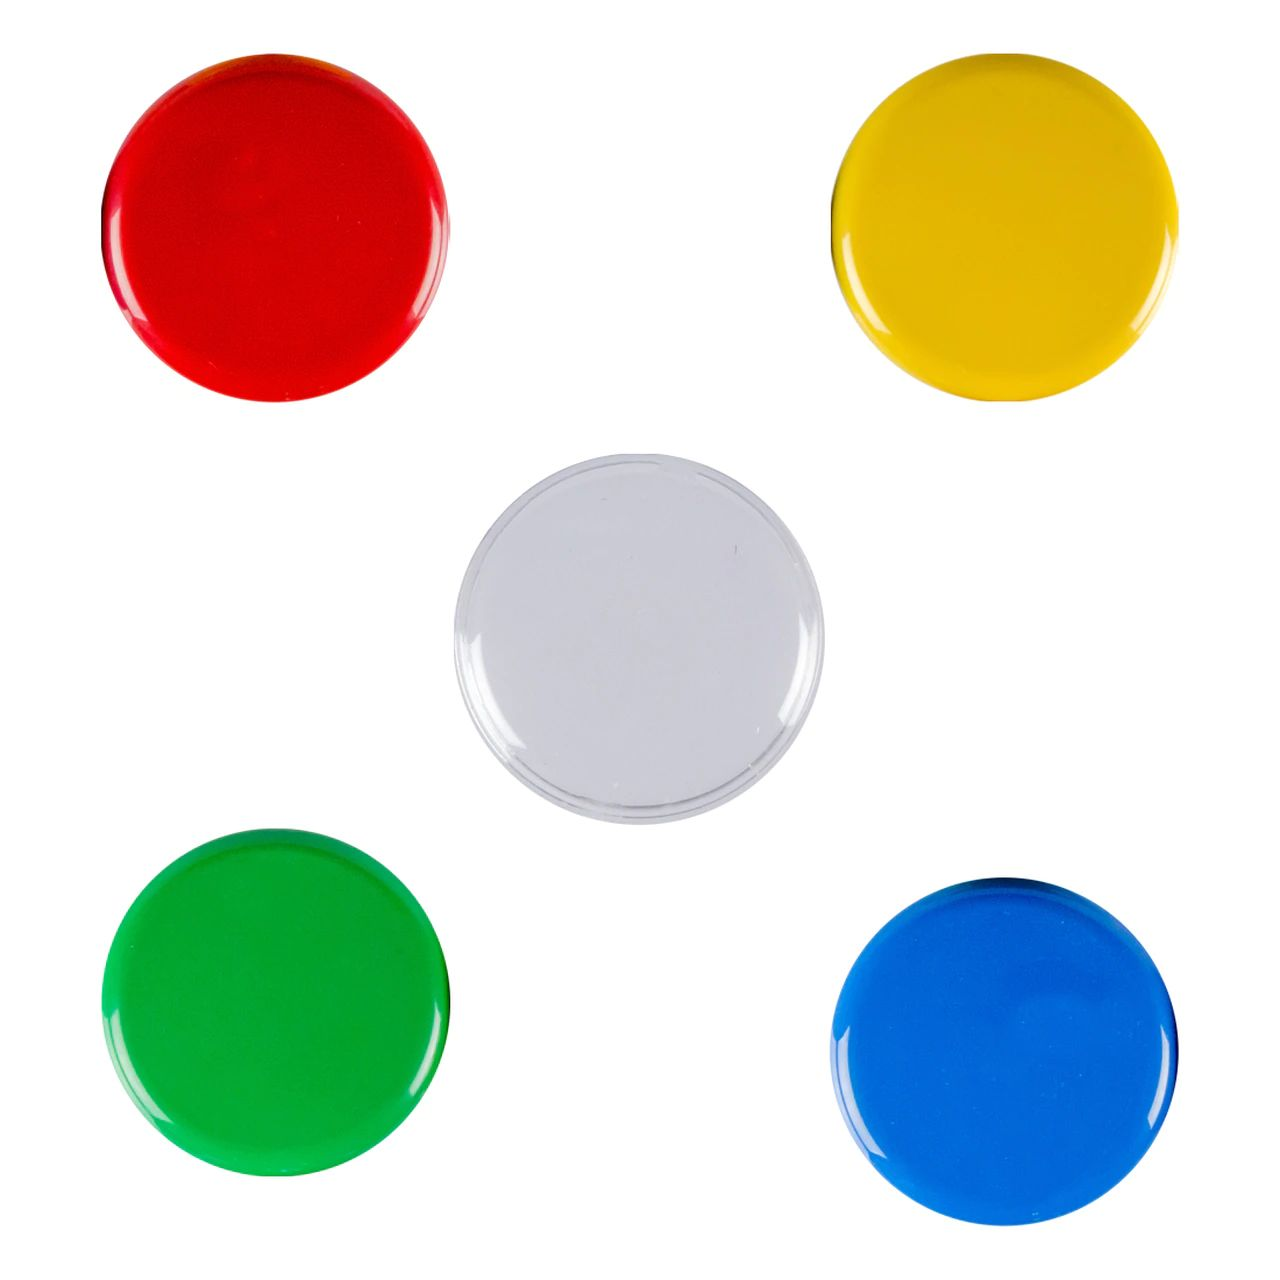 Ablenet choice with levels - Switch top colors